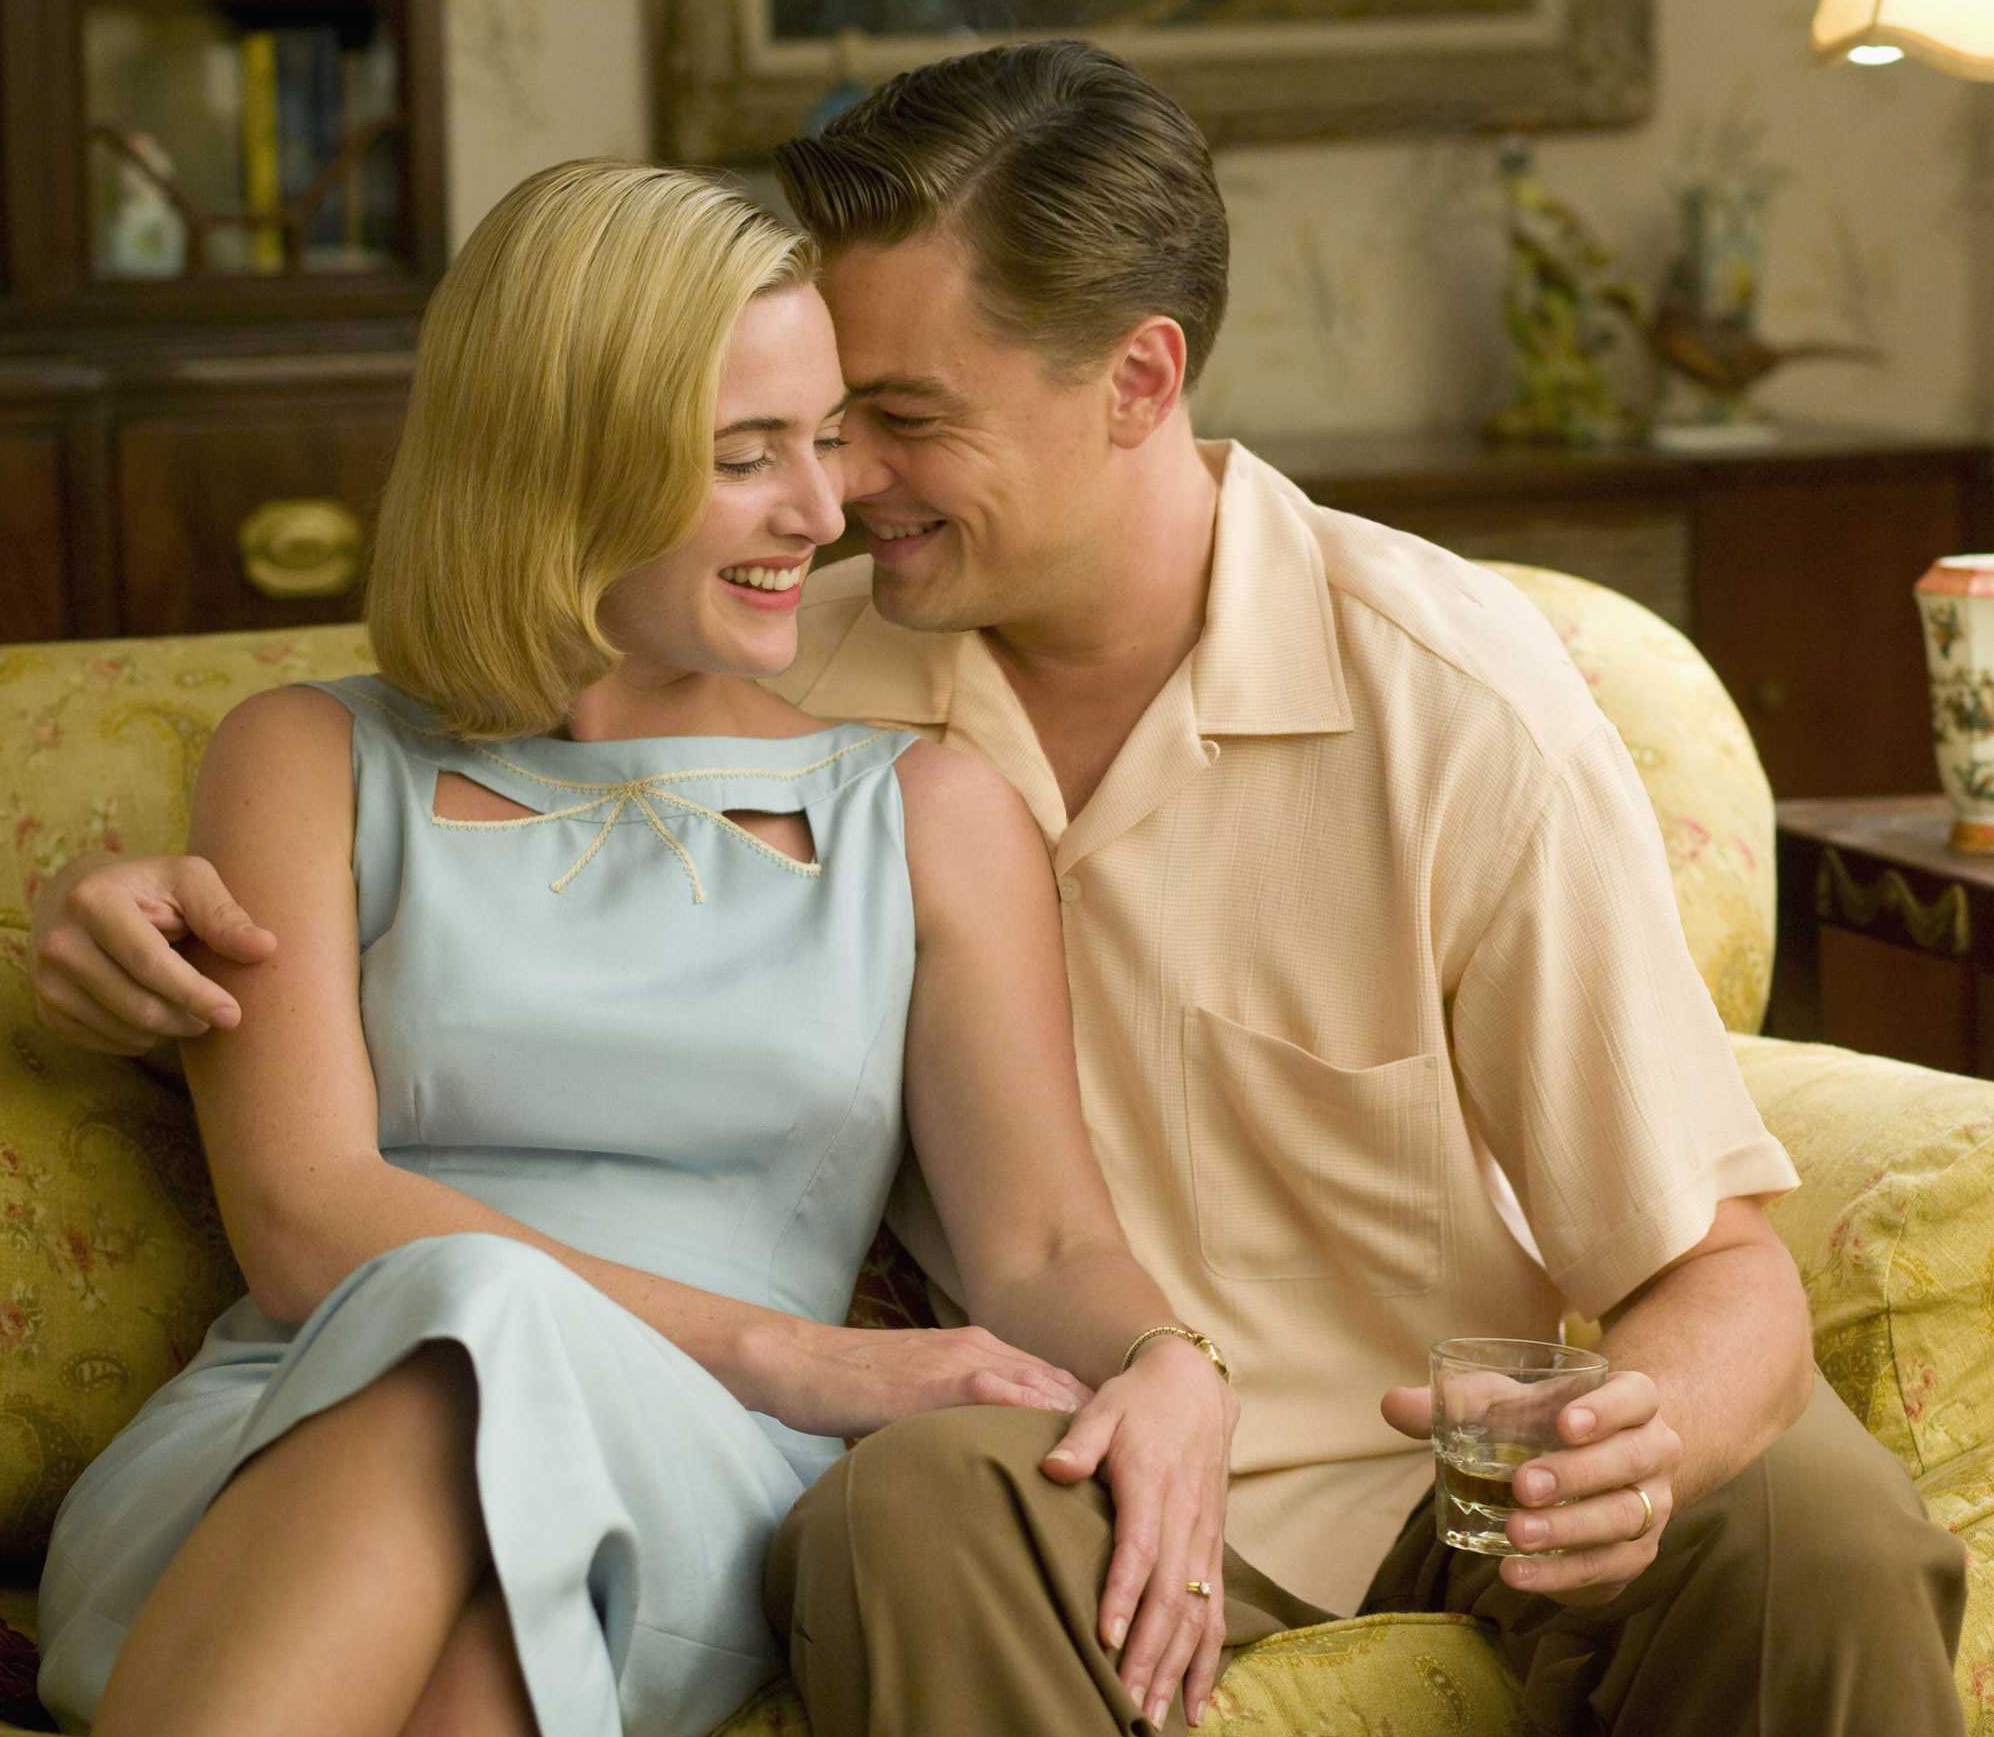 Wallpapers-revolutionary-road-5757381-1994-1737